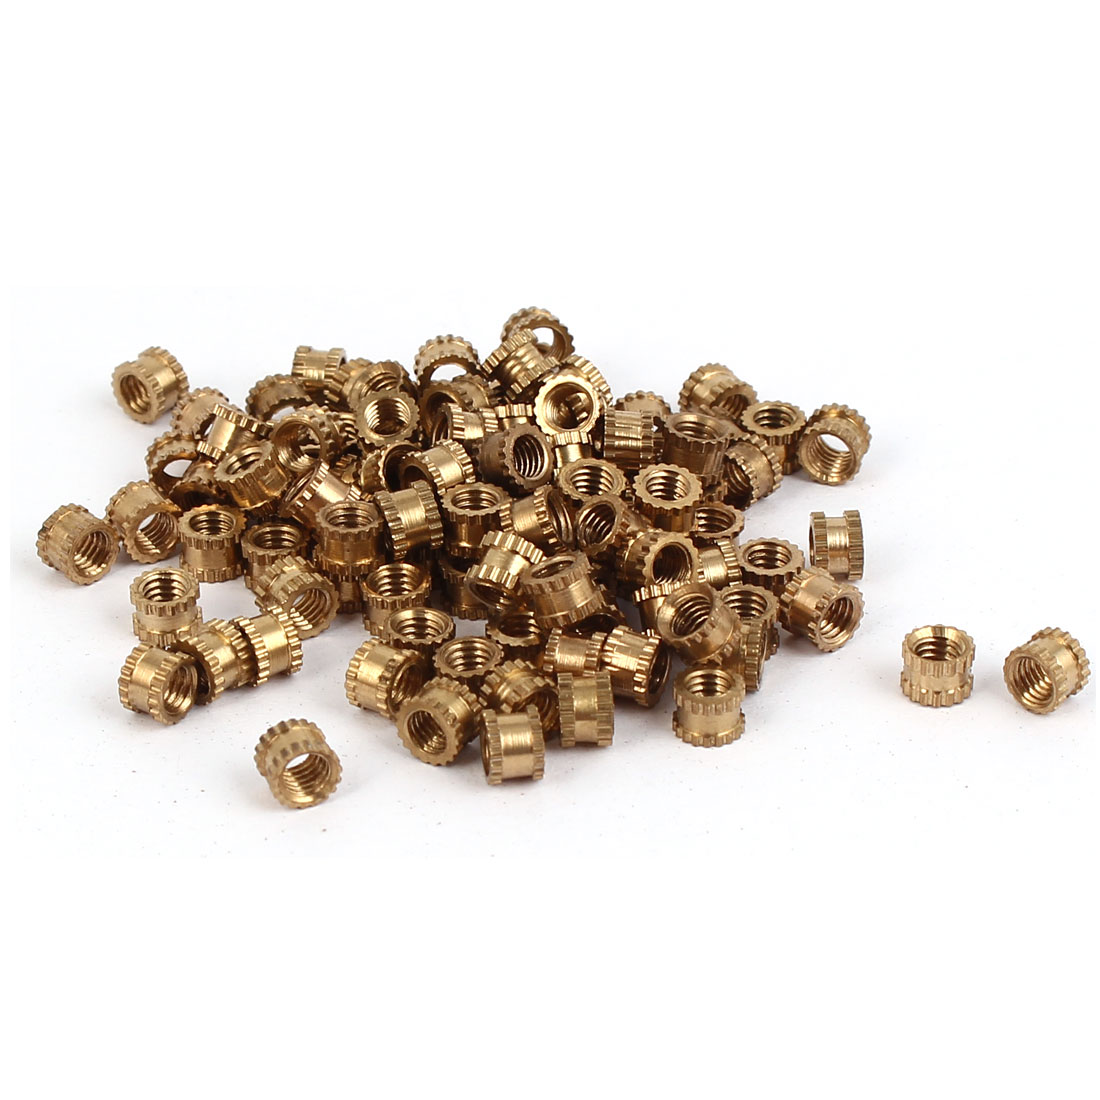 Brass Pack of 10 8mm OD Zinc Plated 10mm Length, Lyn-Tron M4-0.7 Screw Size Female